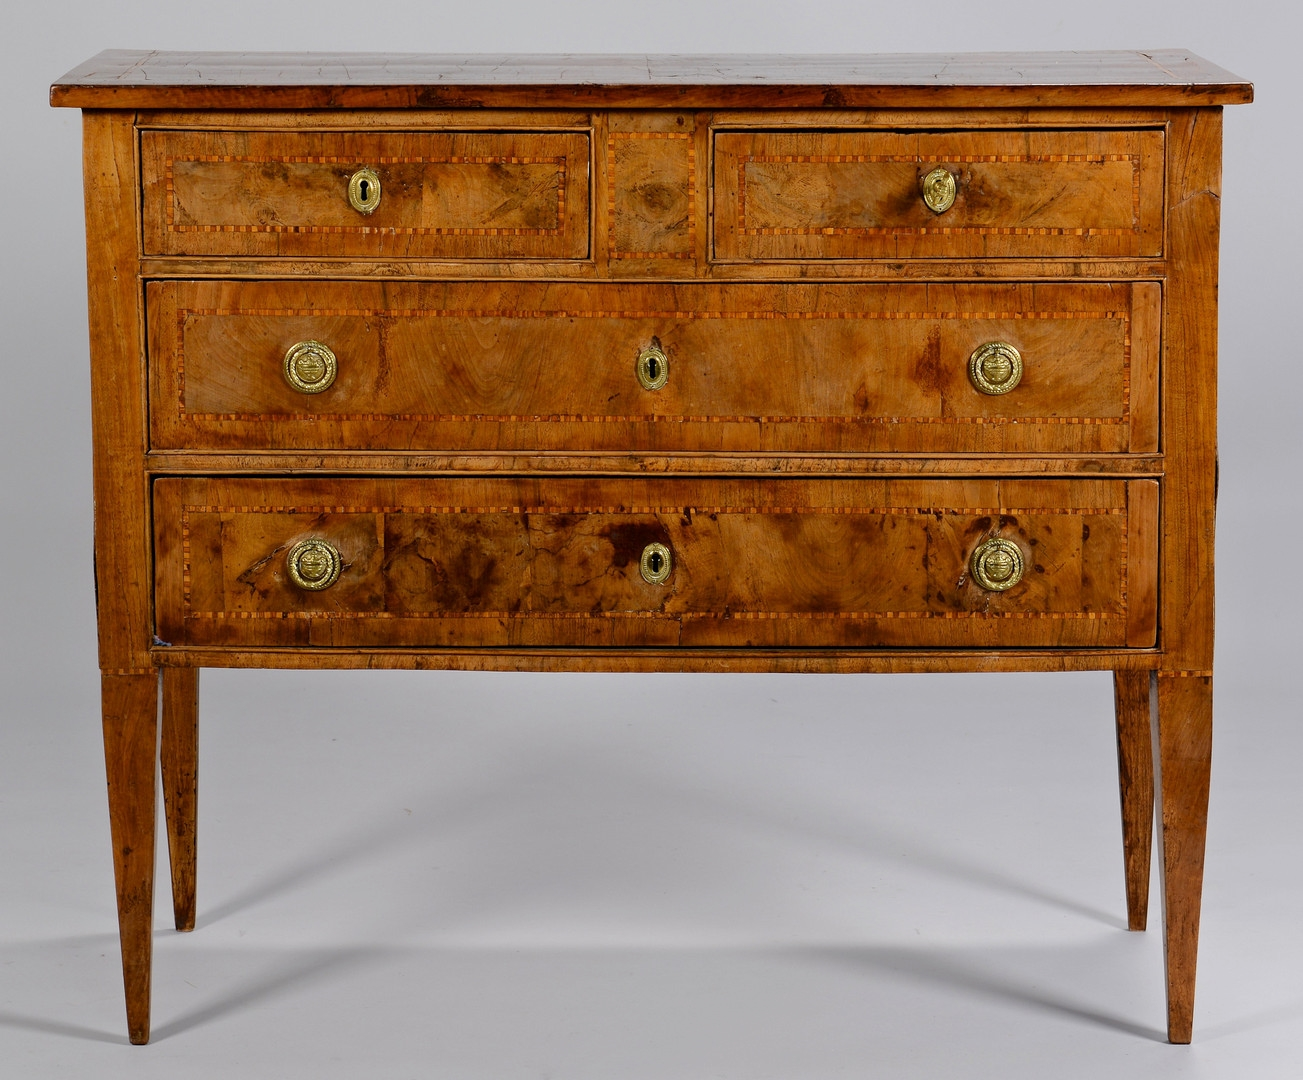 Lot 155: Italian Neoclassical Chest